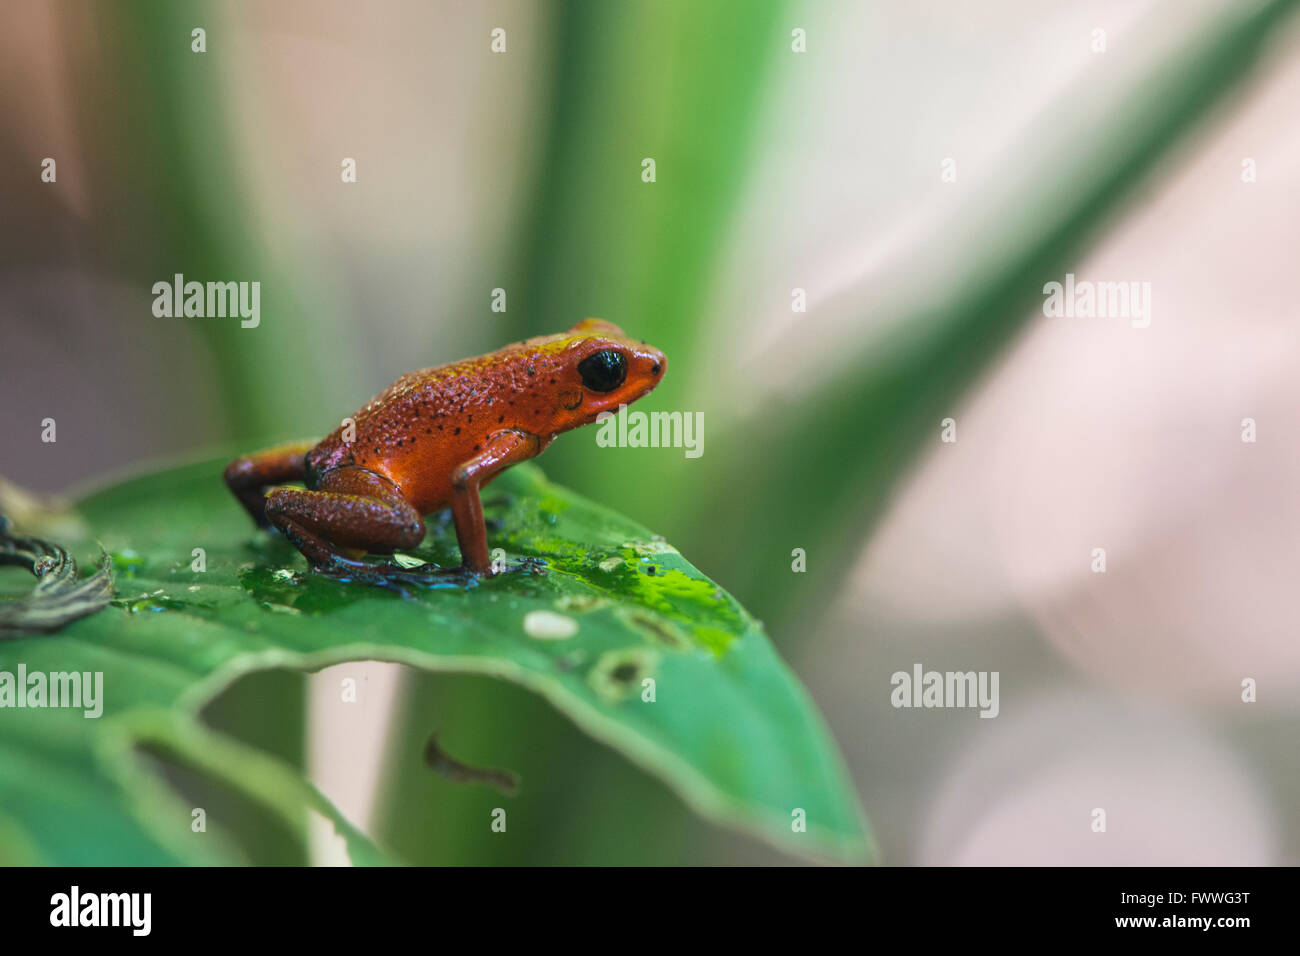 Strawberry poison-dart frog (Oophaga pumilio) perched on a leaf, Heredia Province, Costa Rica - Stock Image